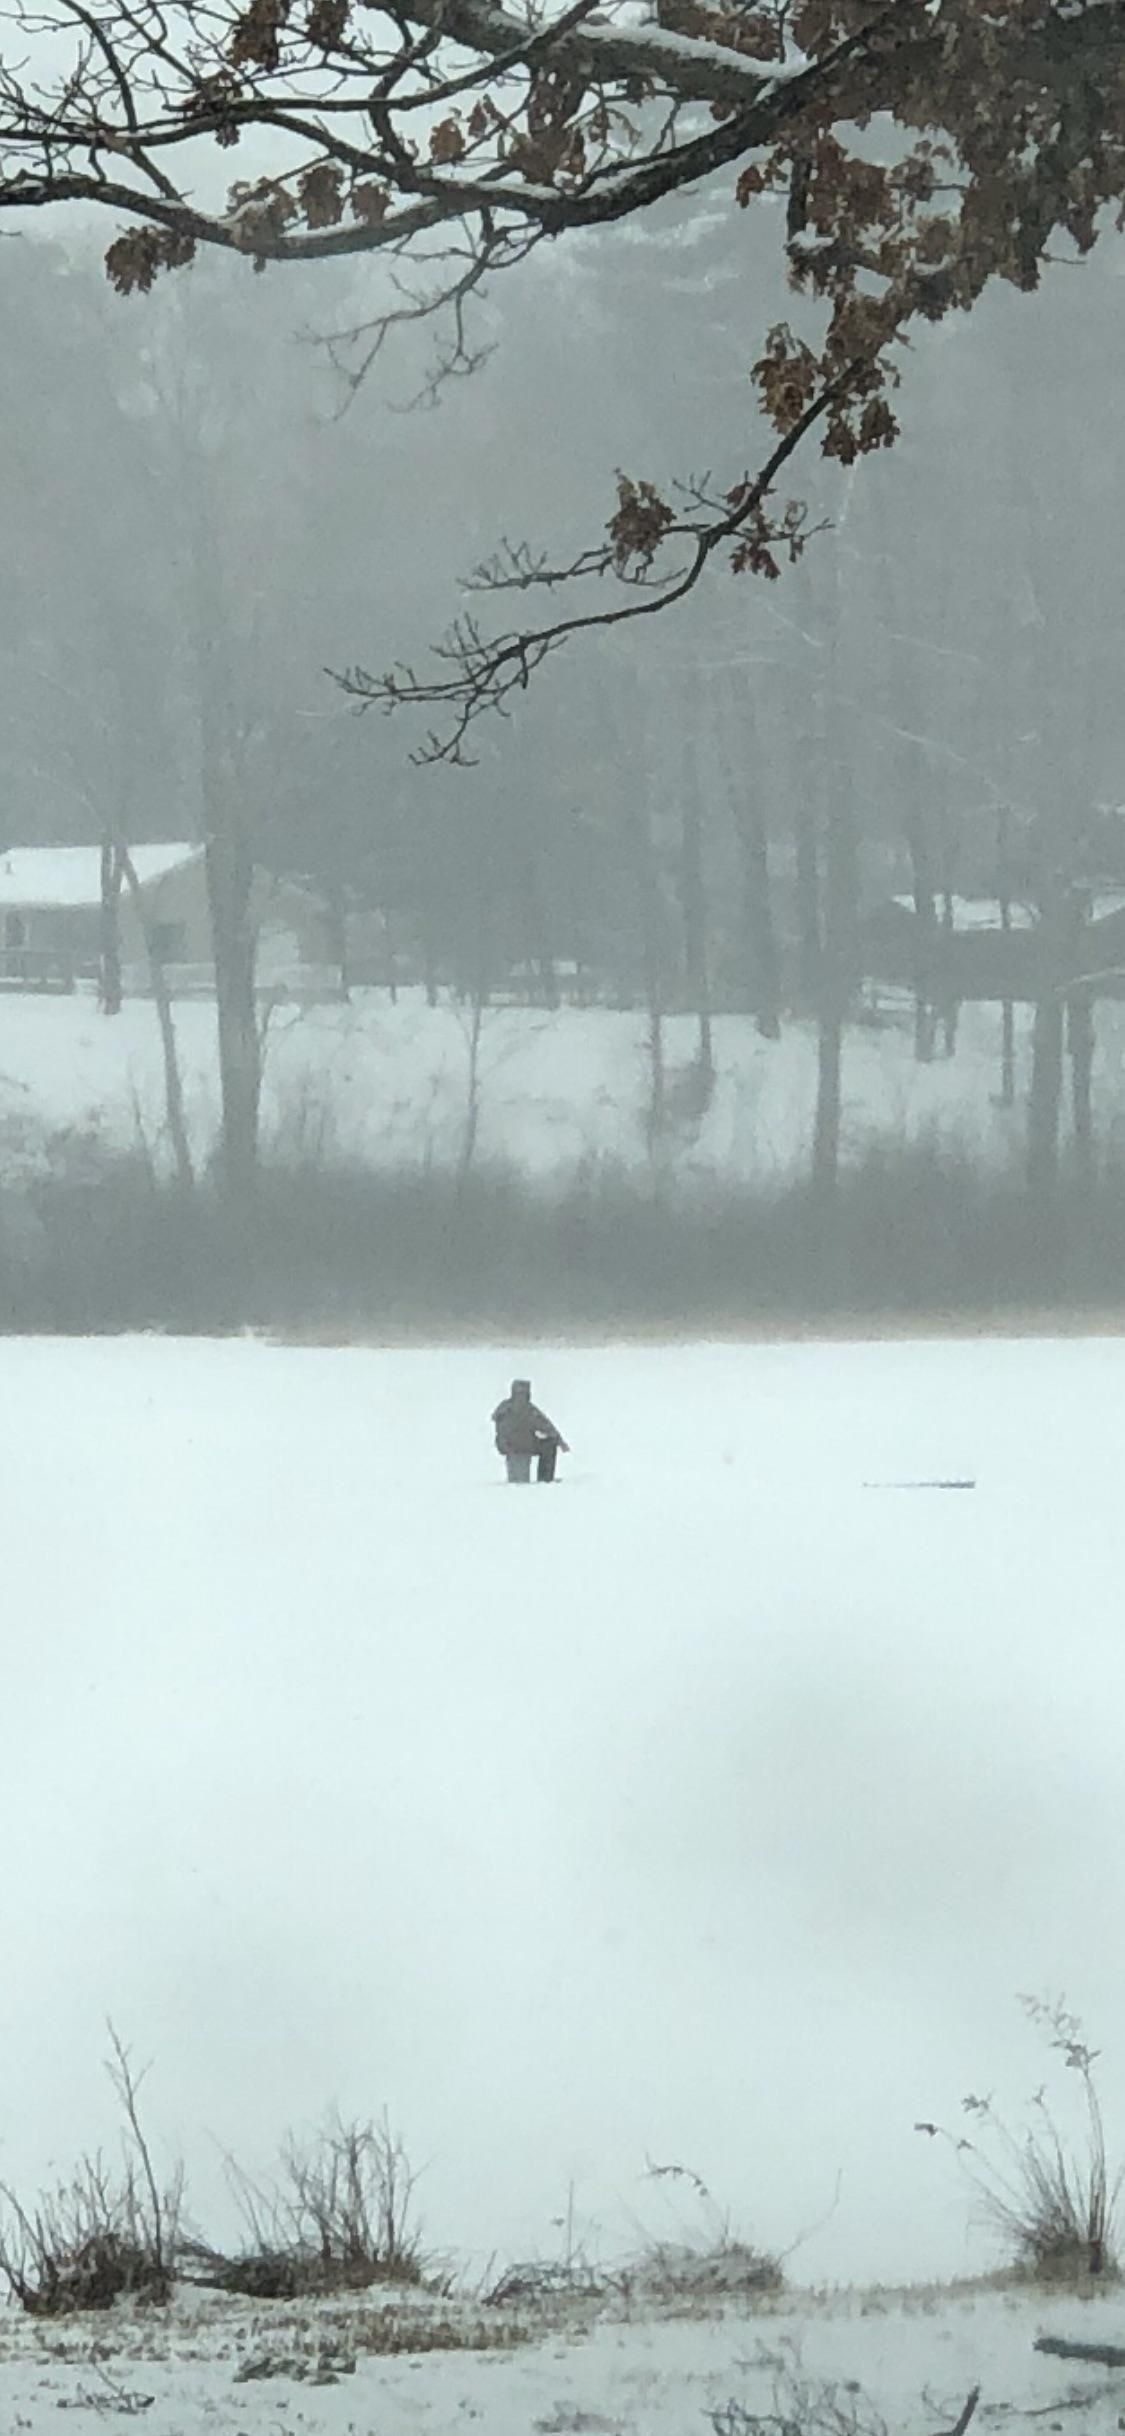 Ice fishing in freezing rain today  Theses guys are hard